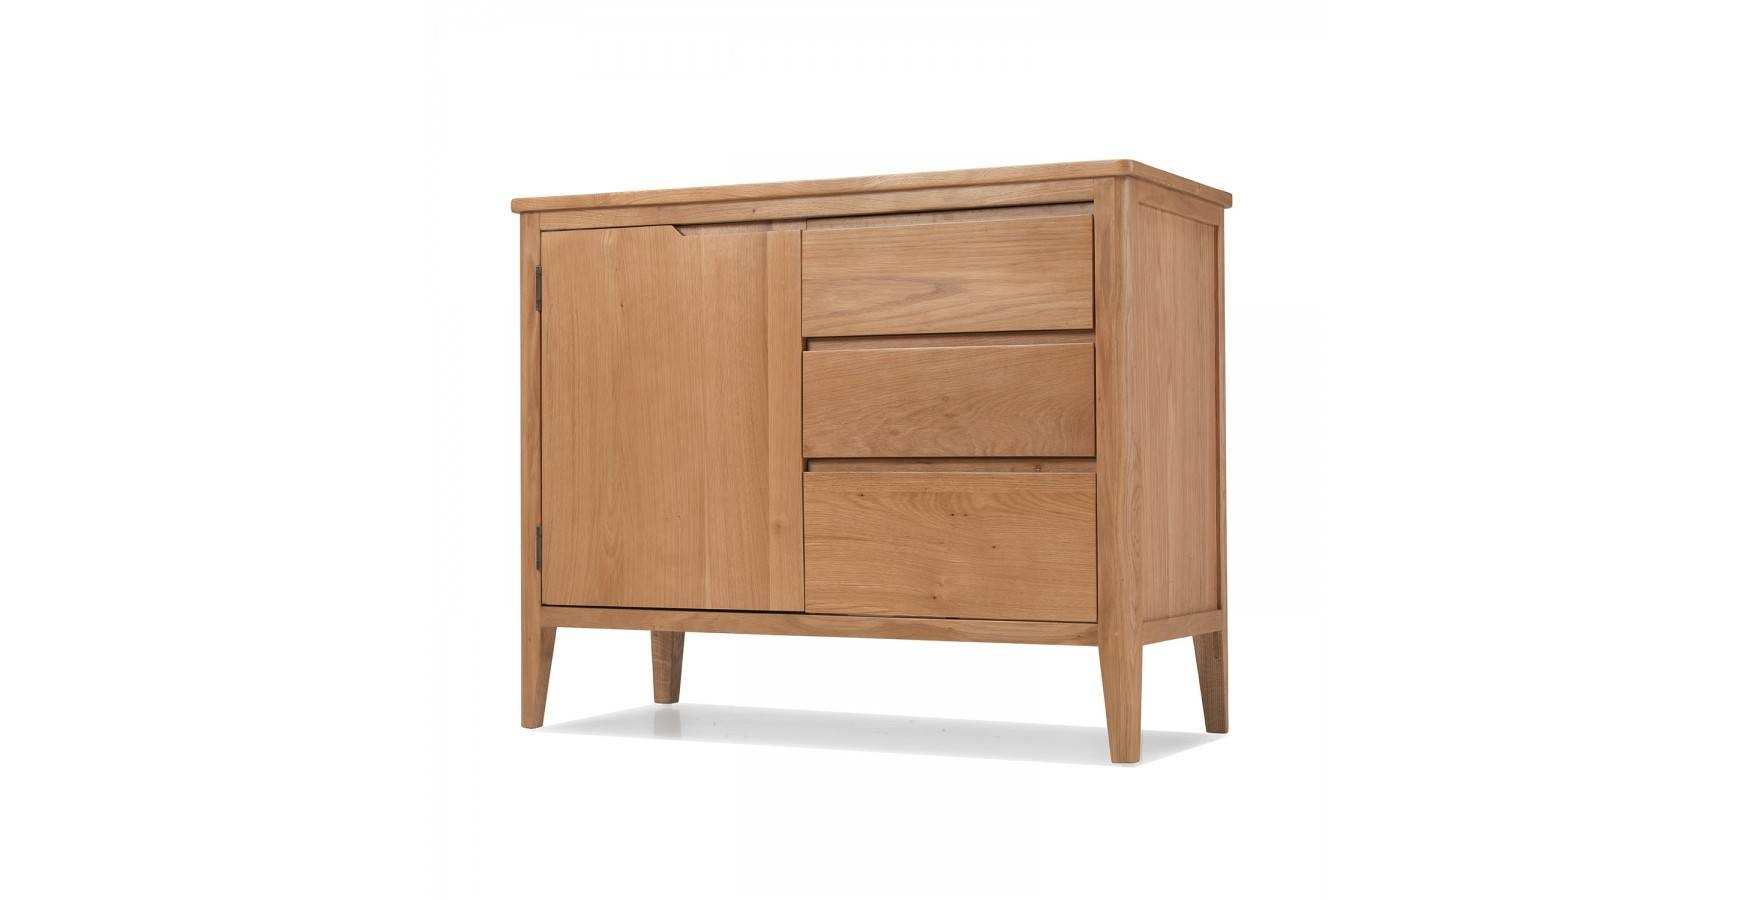 Cadley Oak Small Sideboard With Drawers – Lifestyle Furniture Uk Intended For Small Sideboard With Drawers (View 5 of 20)